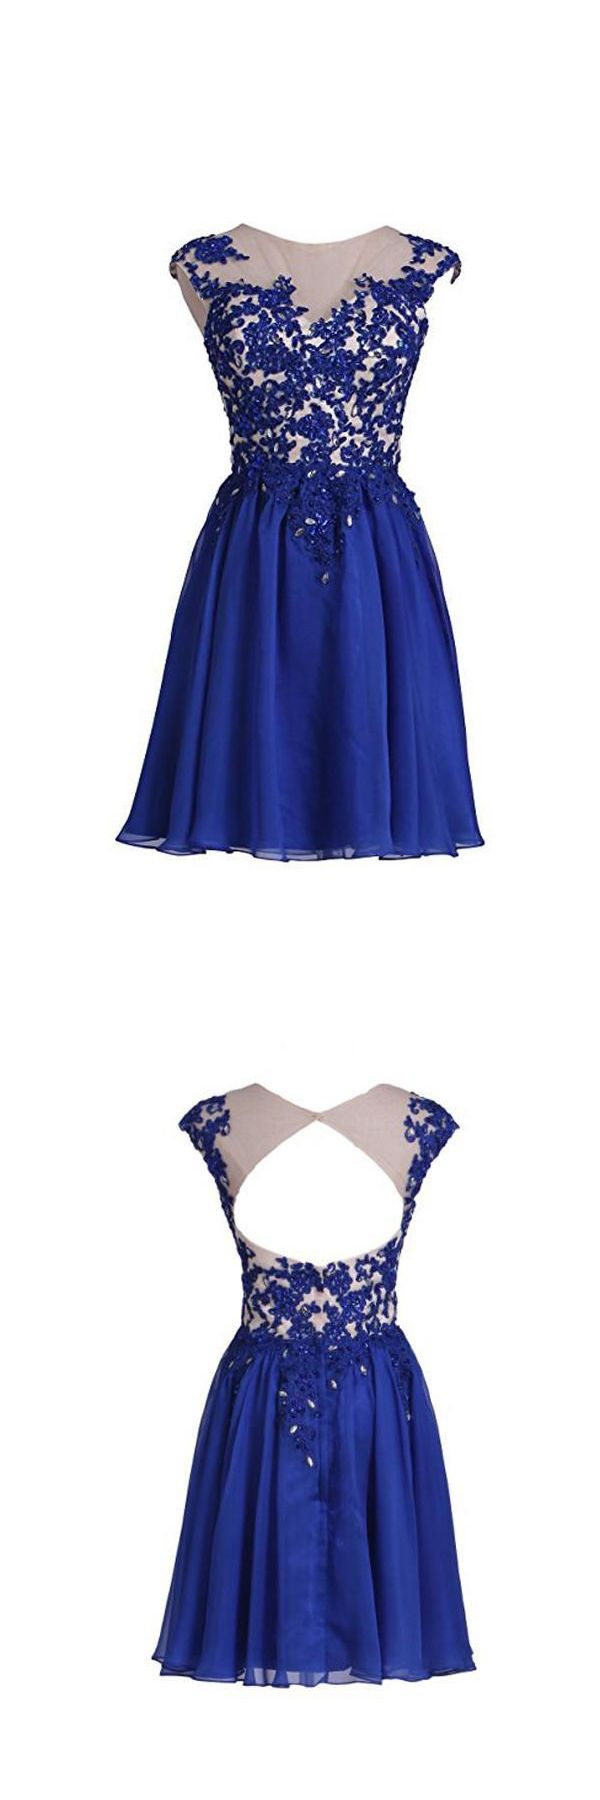 Homecoming dress with applique open back short prom dress pg in